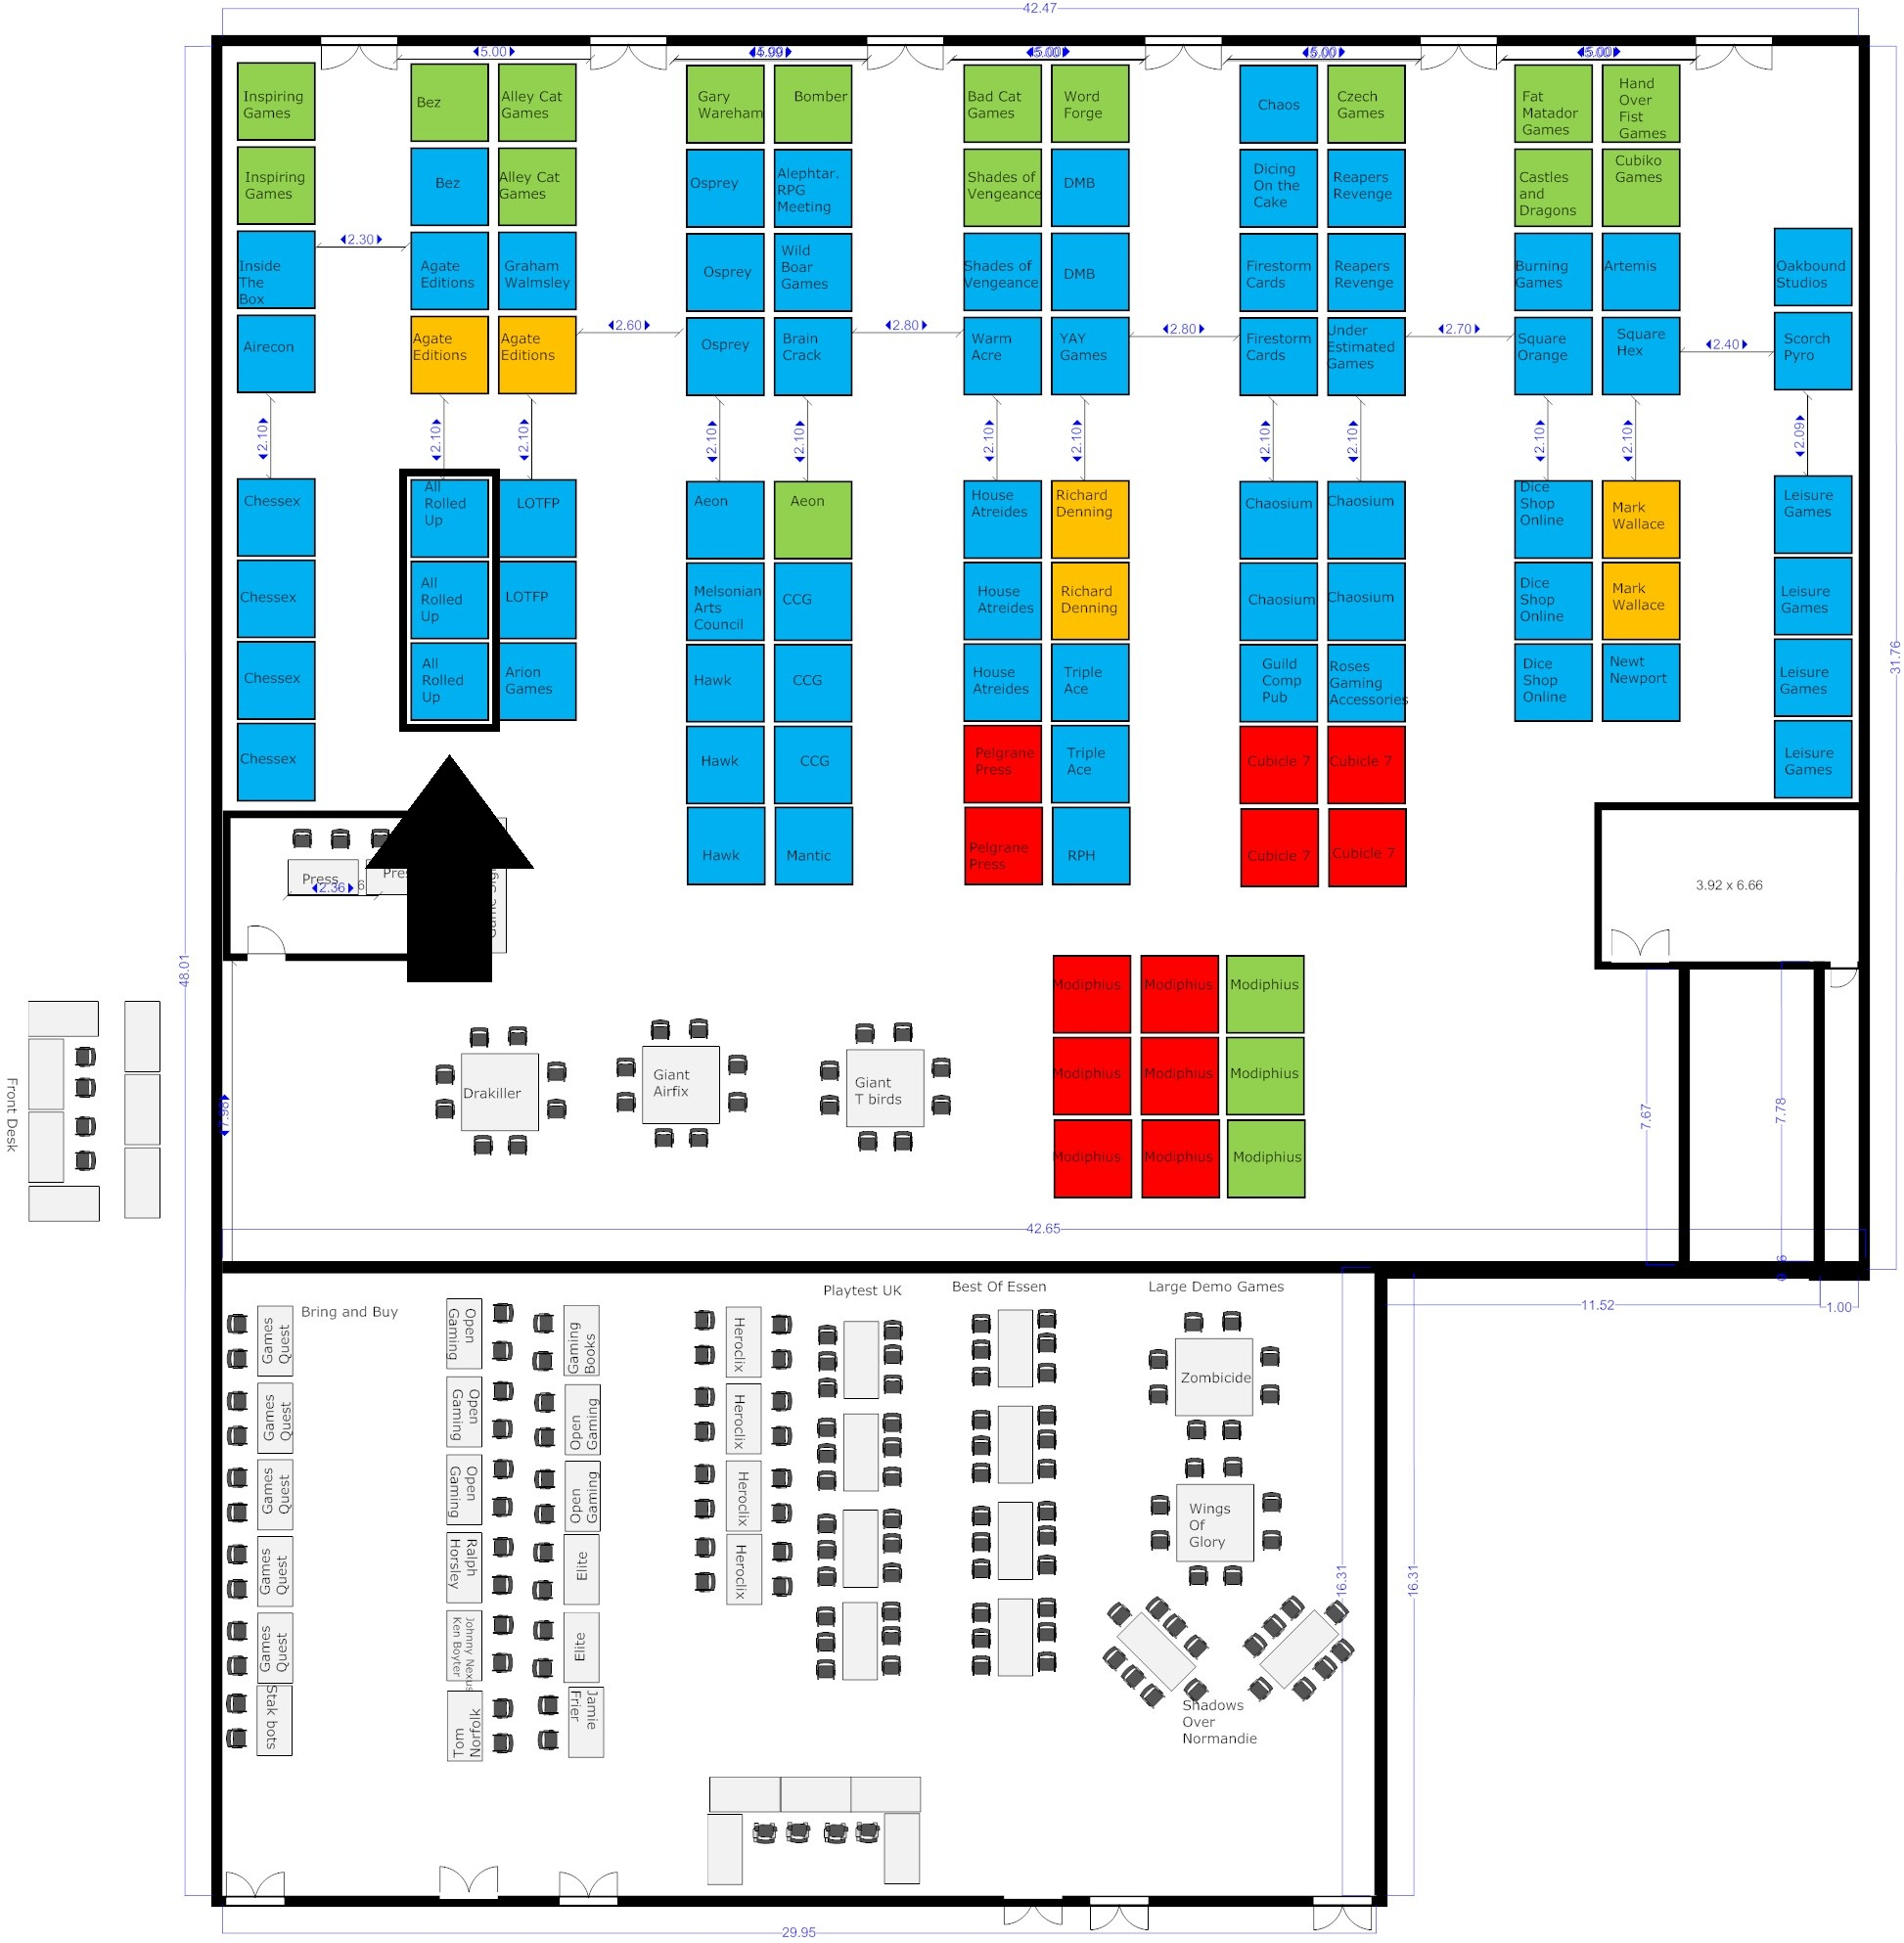 dragonmeet-novotel-exhibitor-map